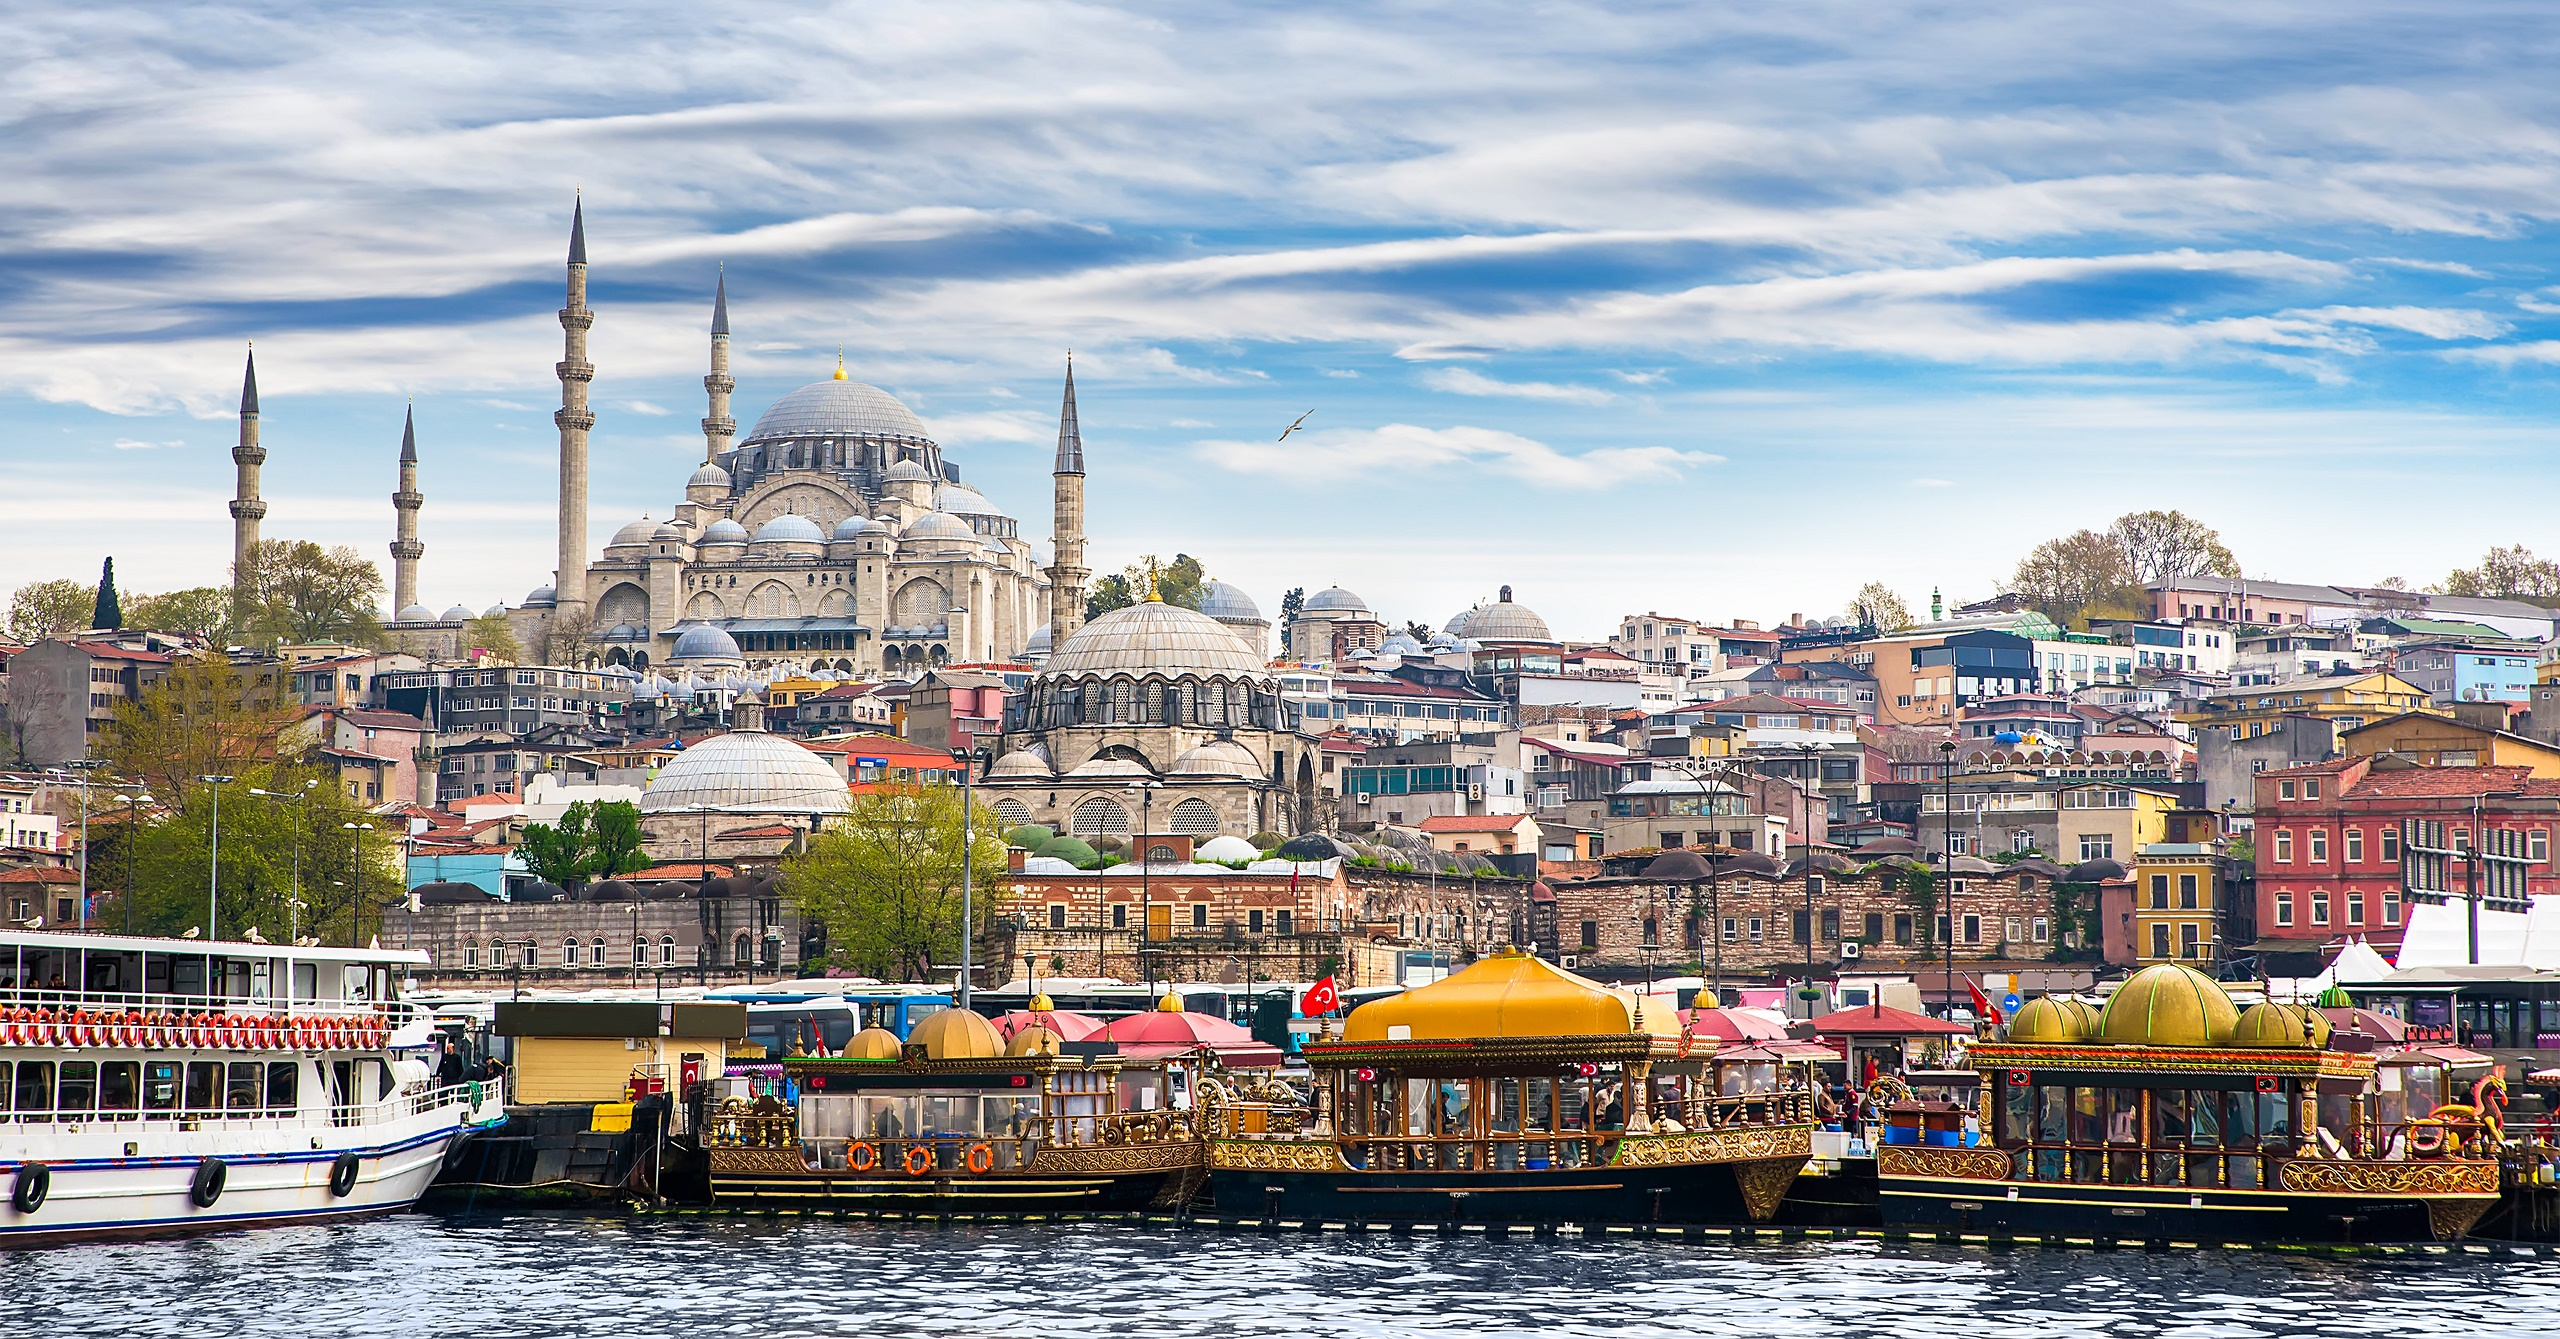 Istanbul HD Wallpaper  Background Image  2560x1339  ID